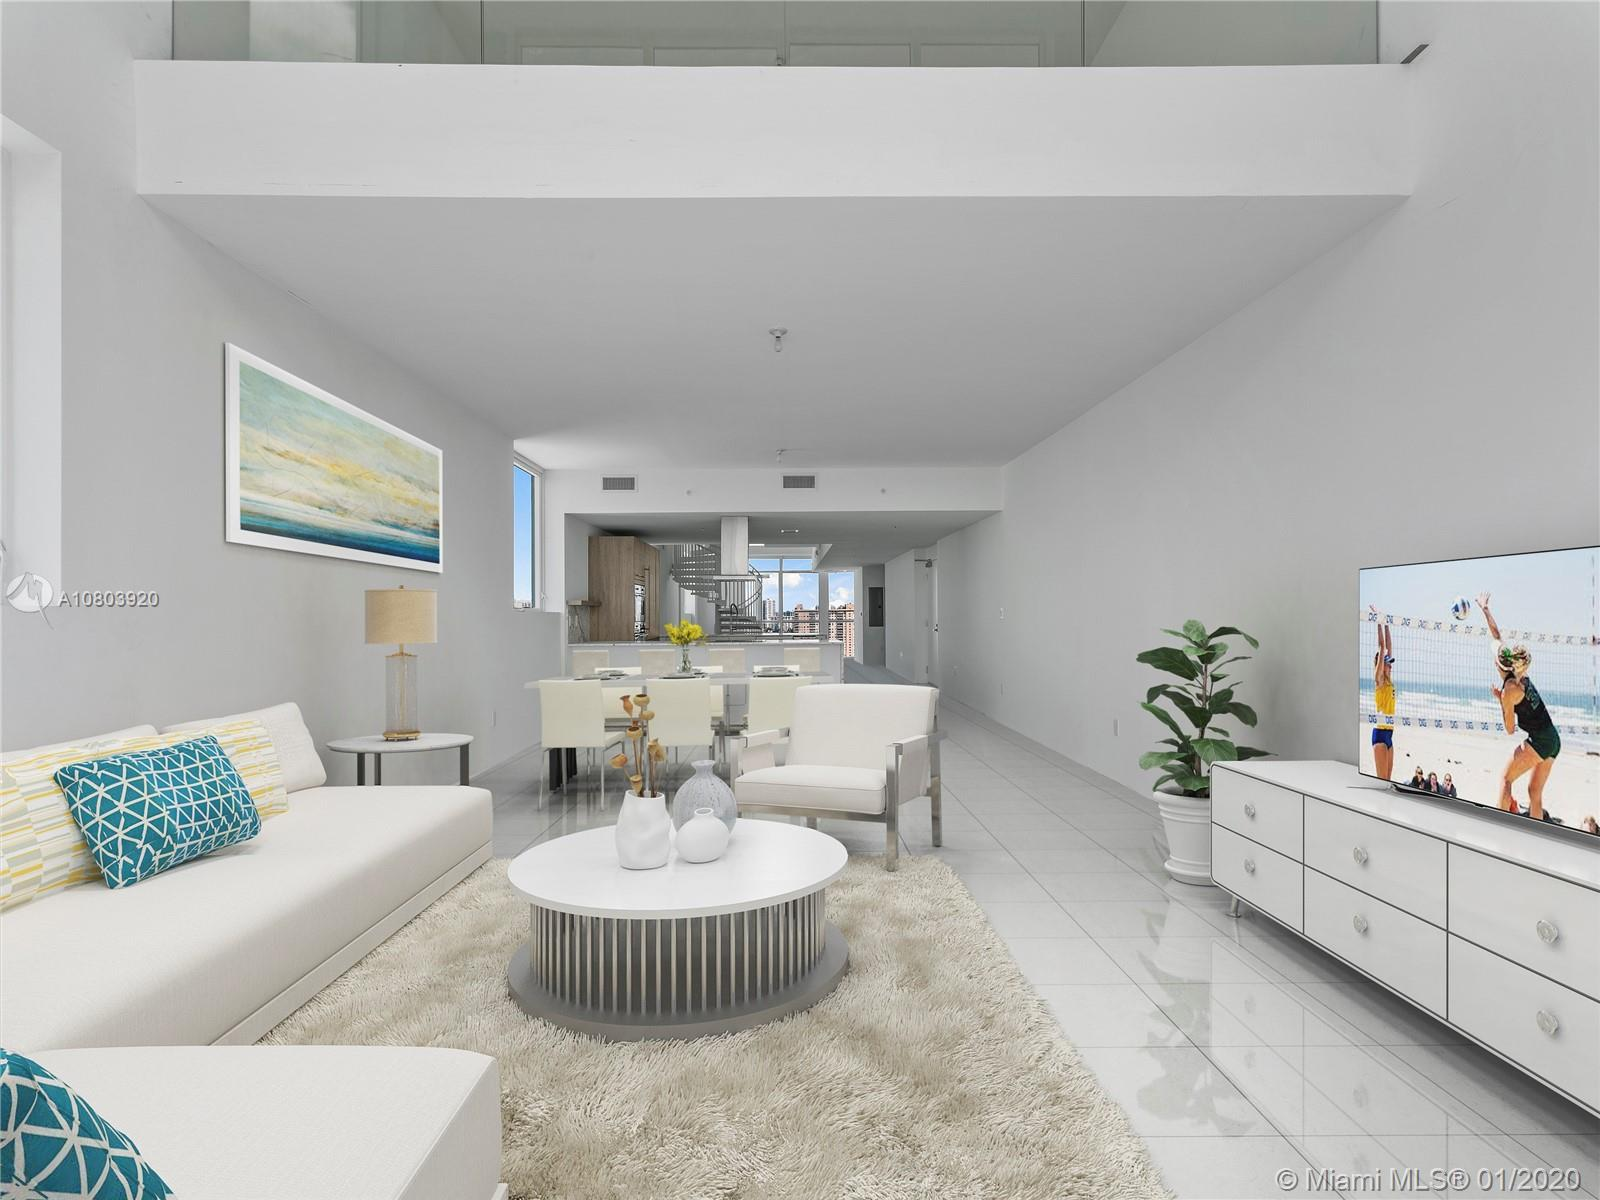 400 Sunny Isles Blvd # 2015, Sunny Isles Beach, Florida 33160, 4 Bedrooms Bedrooms, ,5 BathroomsBathrooms,Residential,For Sale,400 Sunny Isles Blvd # 2015,A10803920